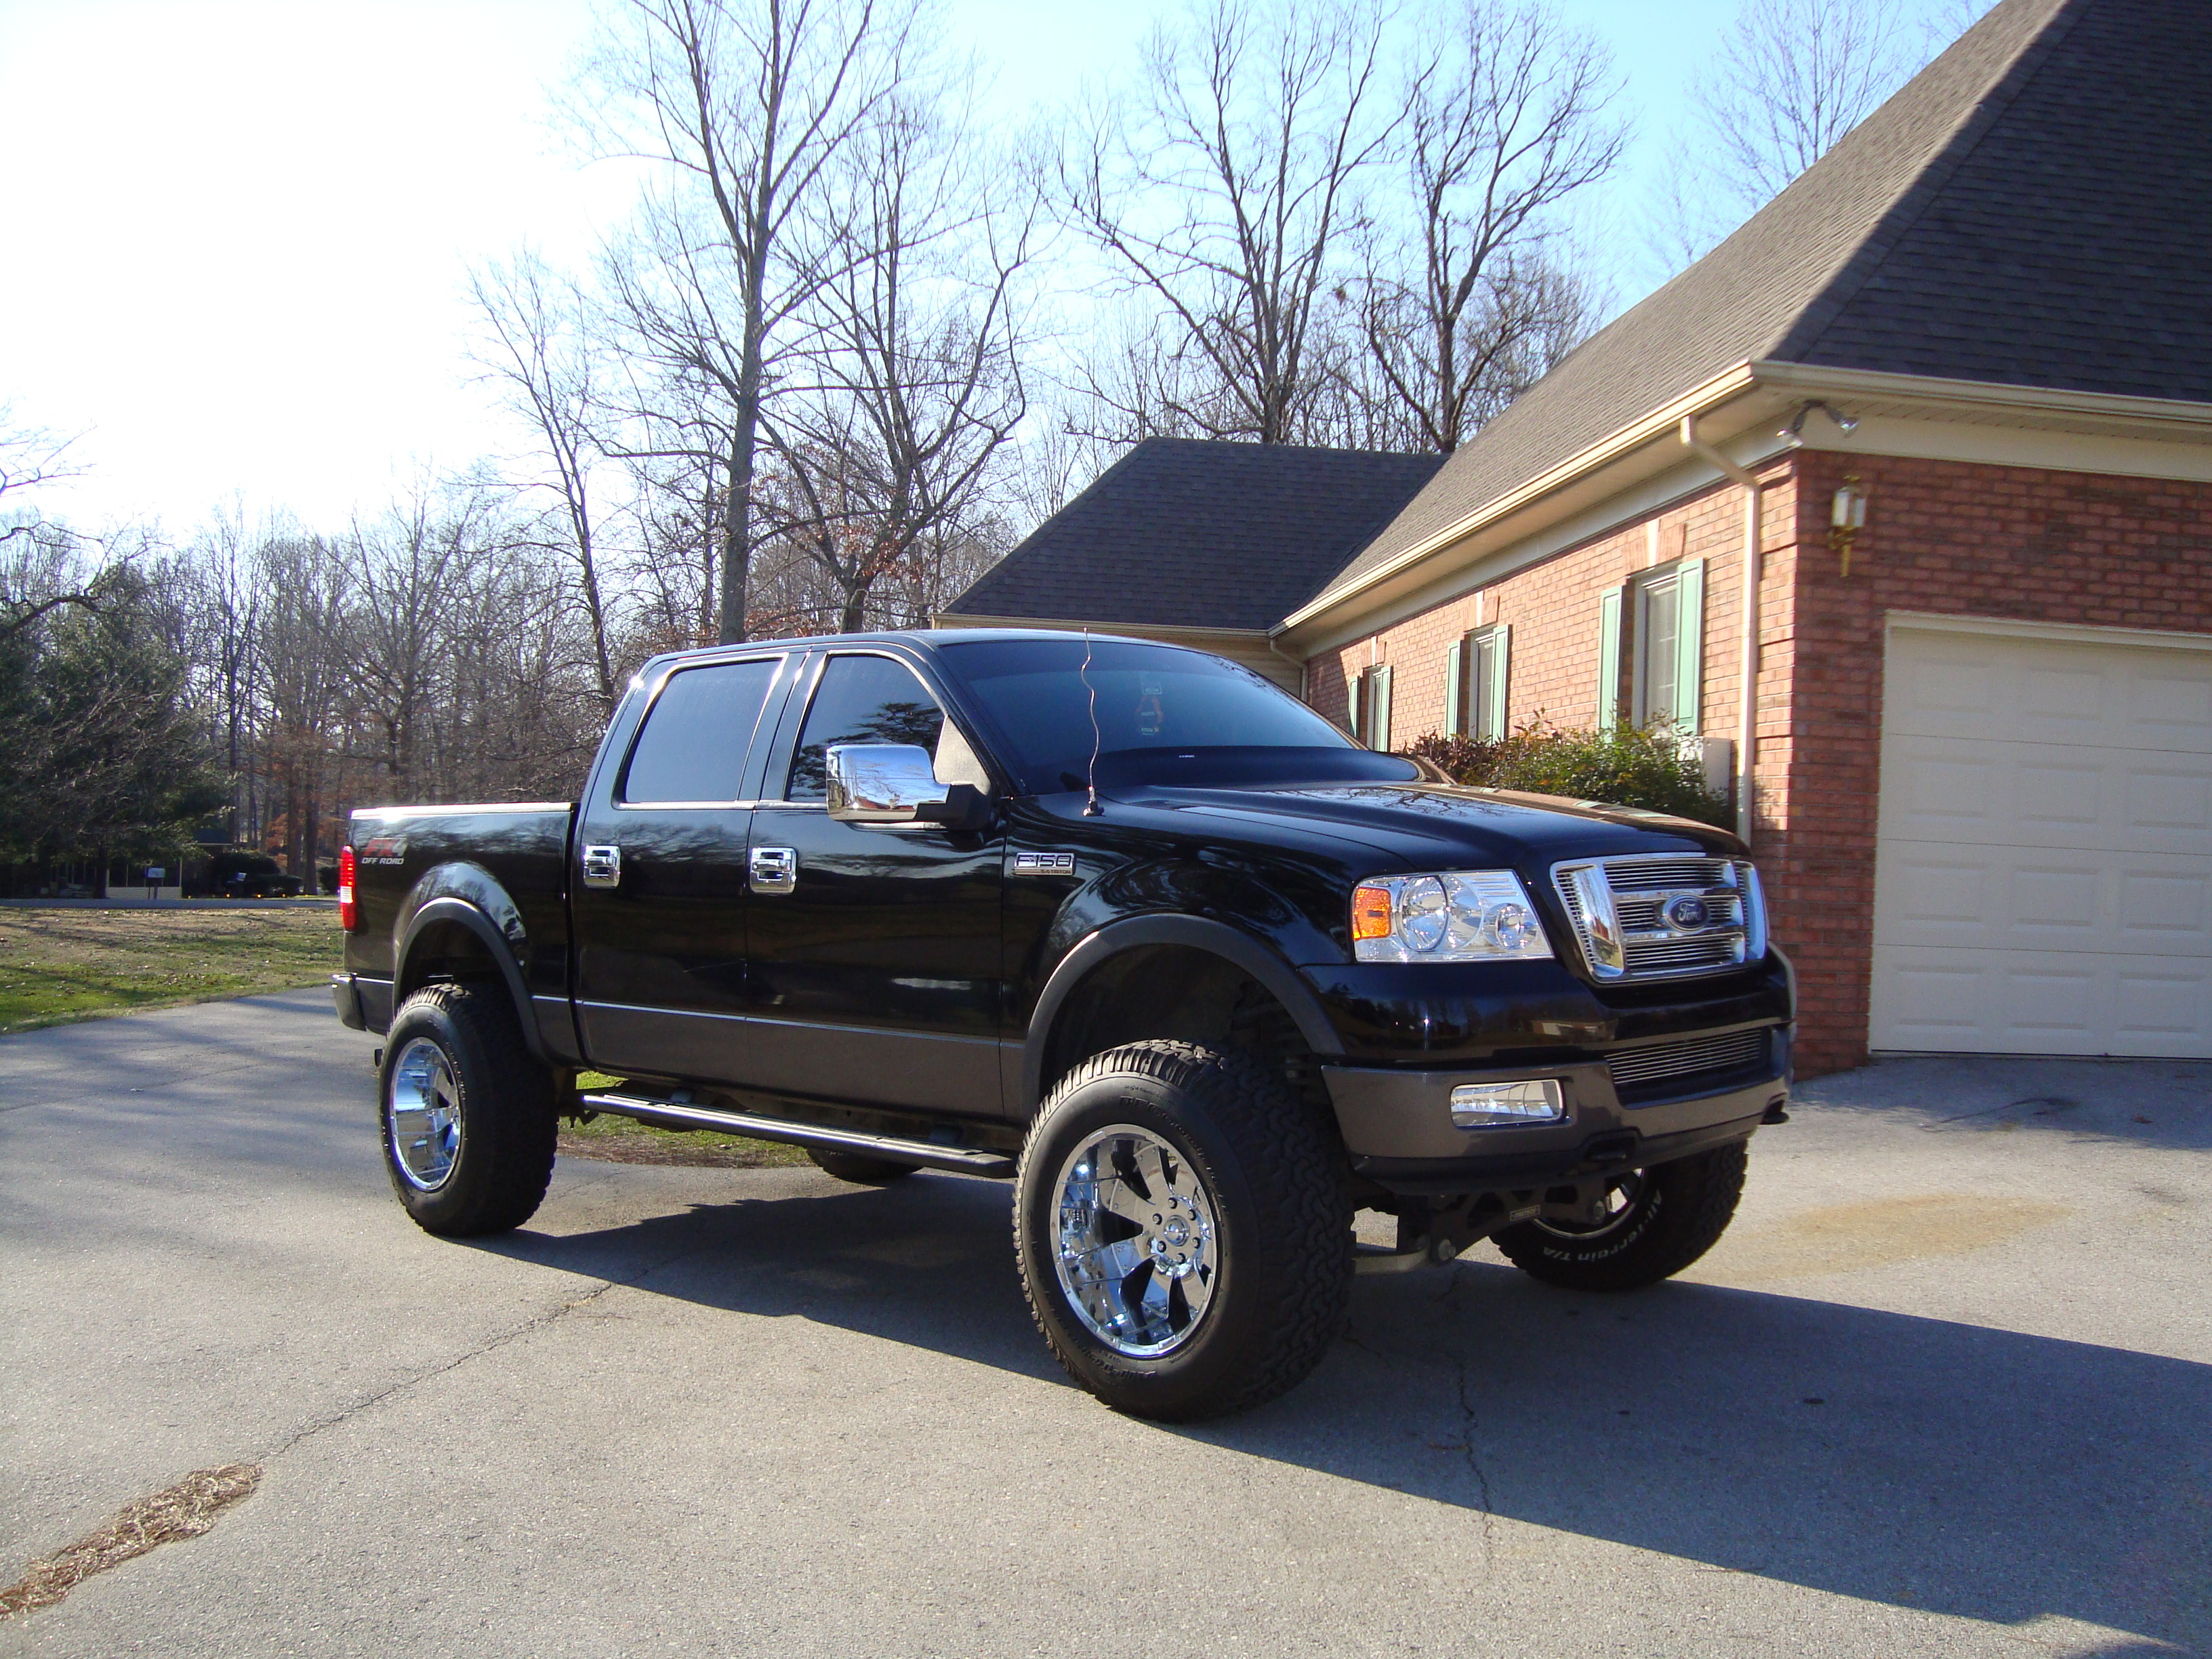 ktipper300 2004 ford f150 regular cab specs photos modification info at cardomain. Black Bedroom Furniture Sets. Home Design Ideas